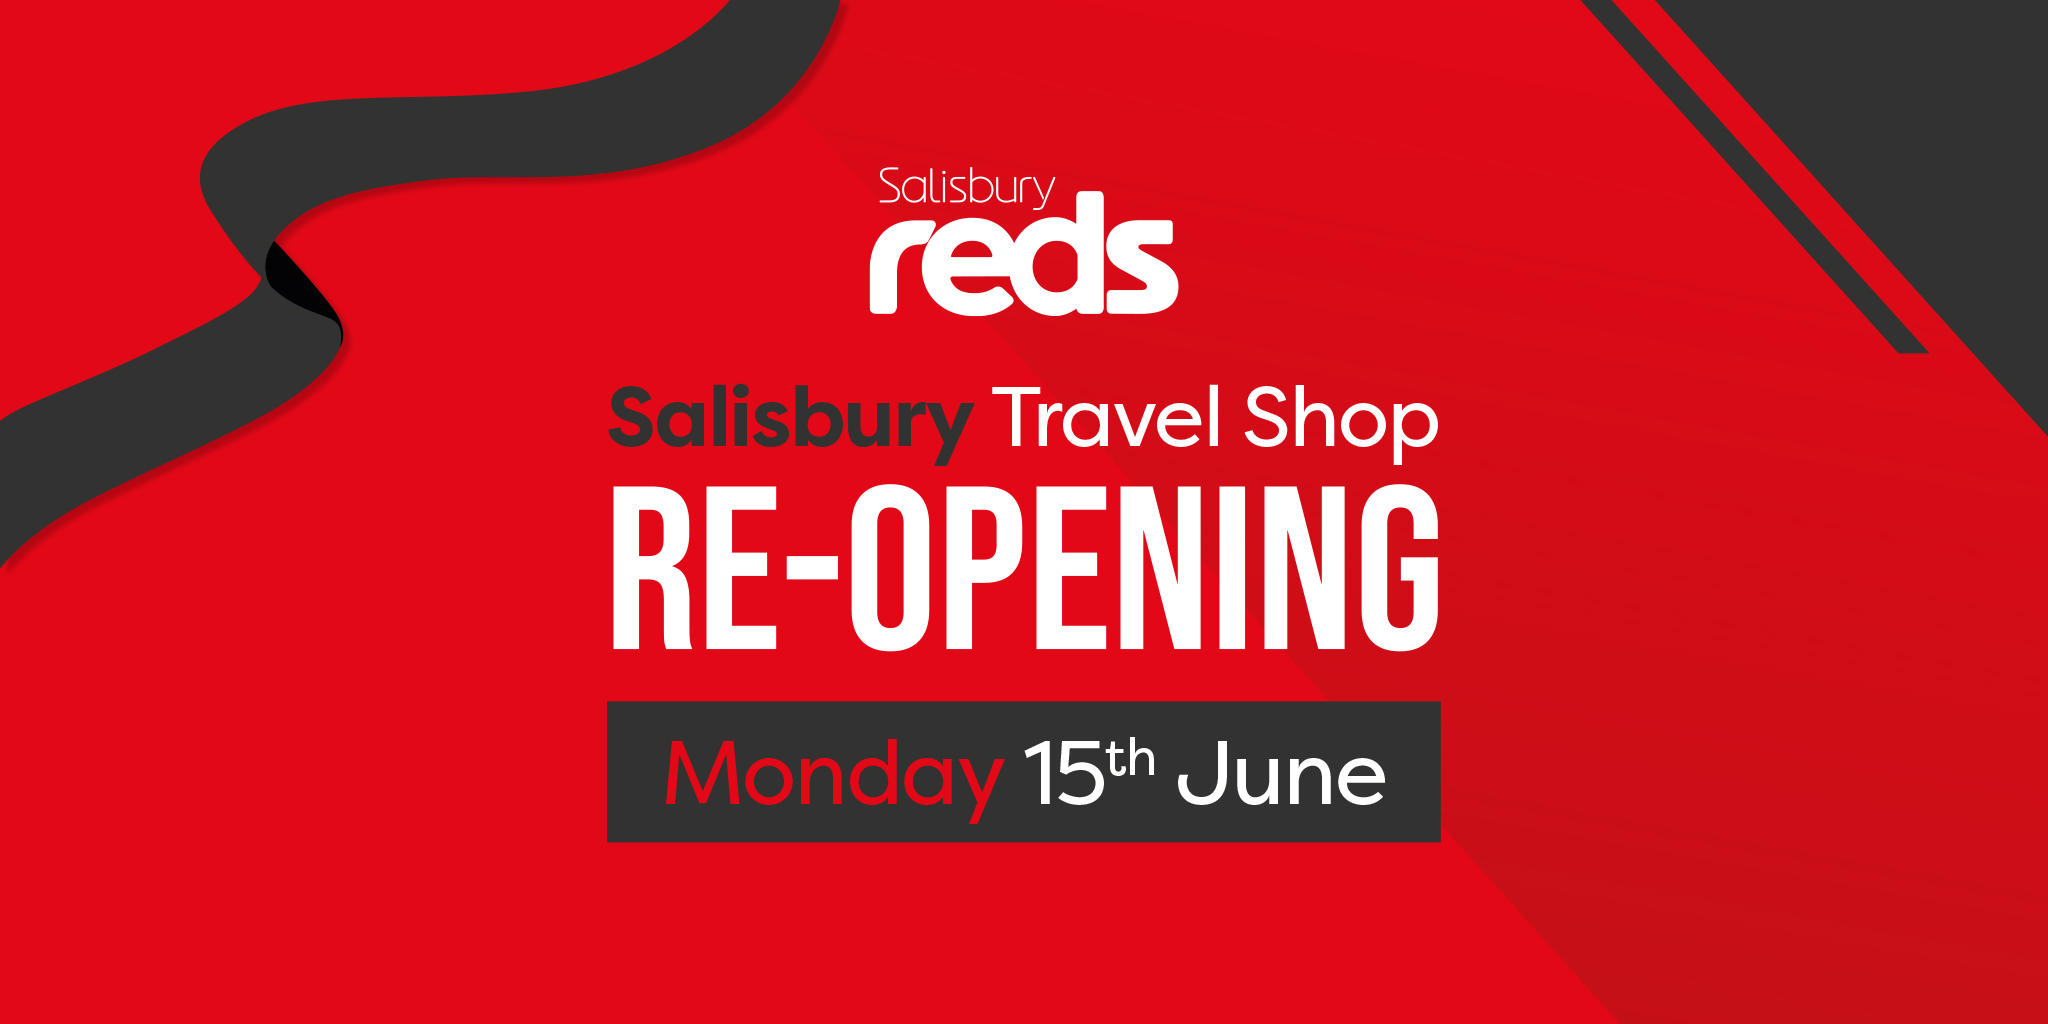 Image reading 'Salisbury Reds Travel Shop Re-opening Monday 15th June'